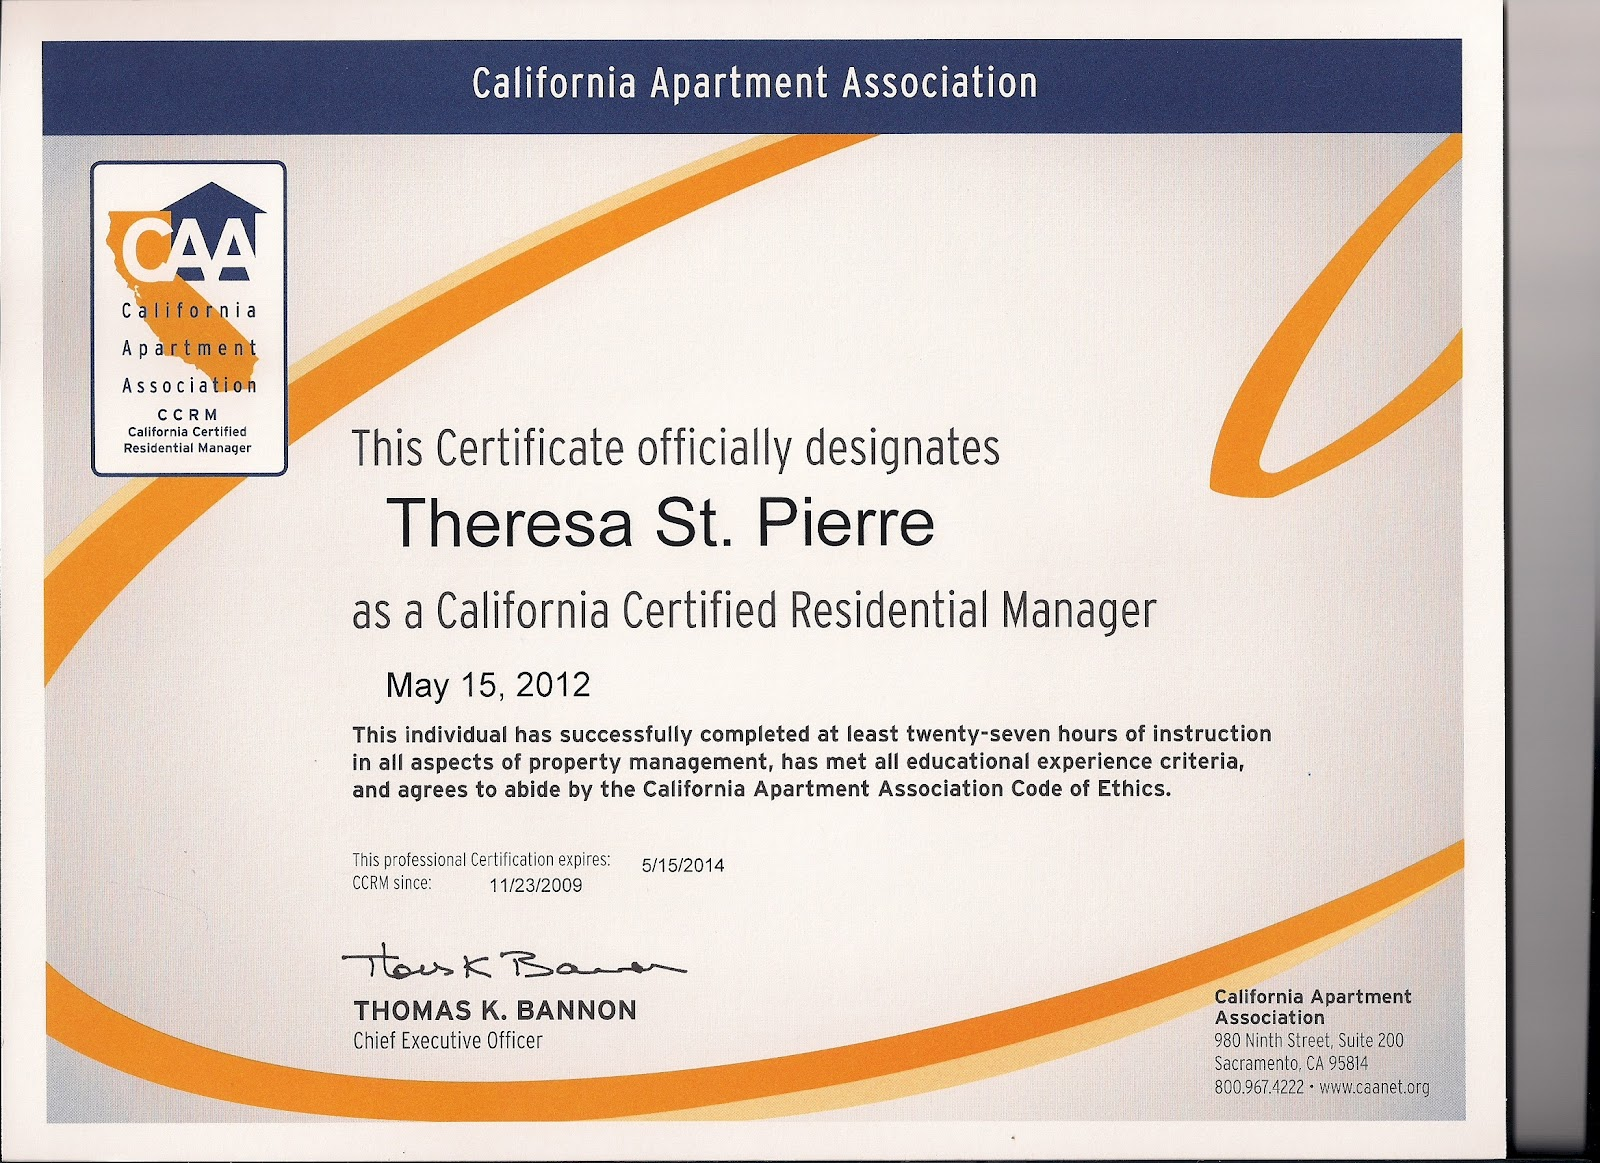 Certified Meeting Professional Certification Ratepersonally